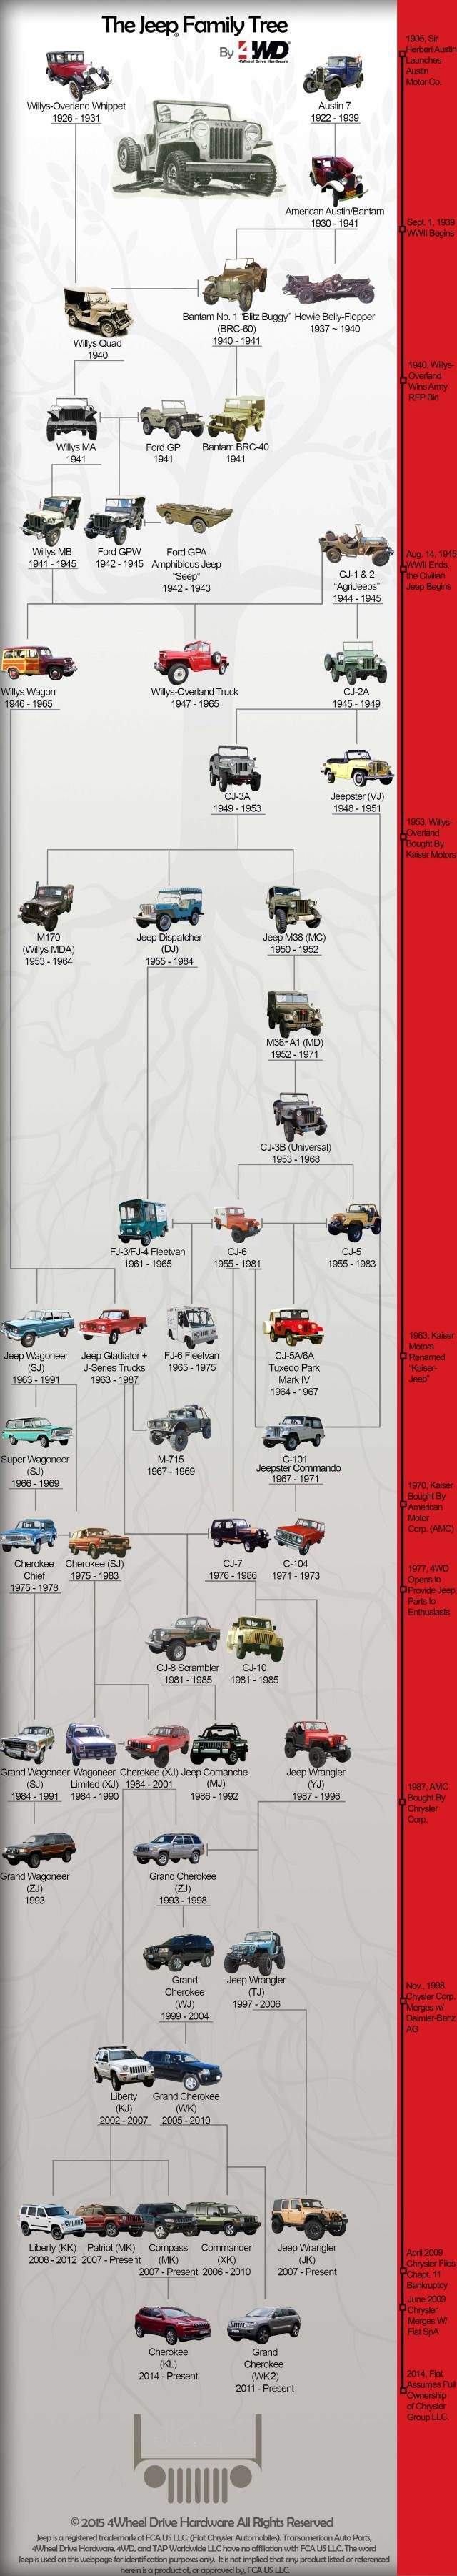 Americas Favorite Off Road Family The Jeep Tree From 4wd 1945 Willys Engine Diagrams By 4wheel Drive Hardware Your Parts Resource